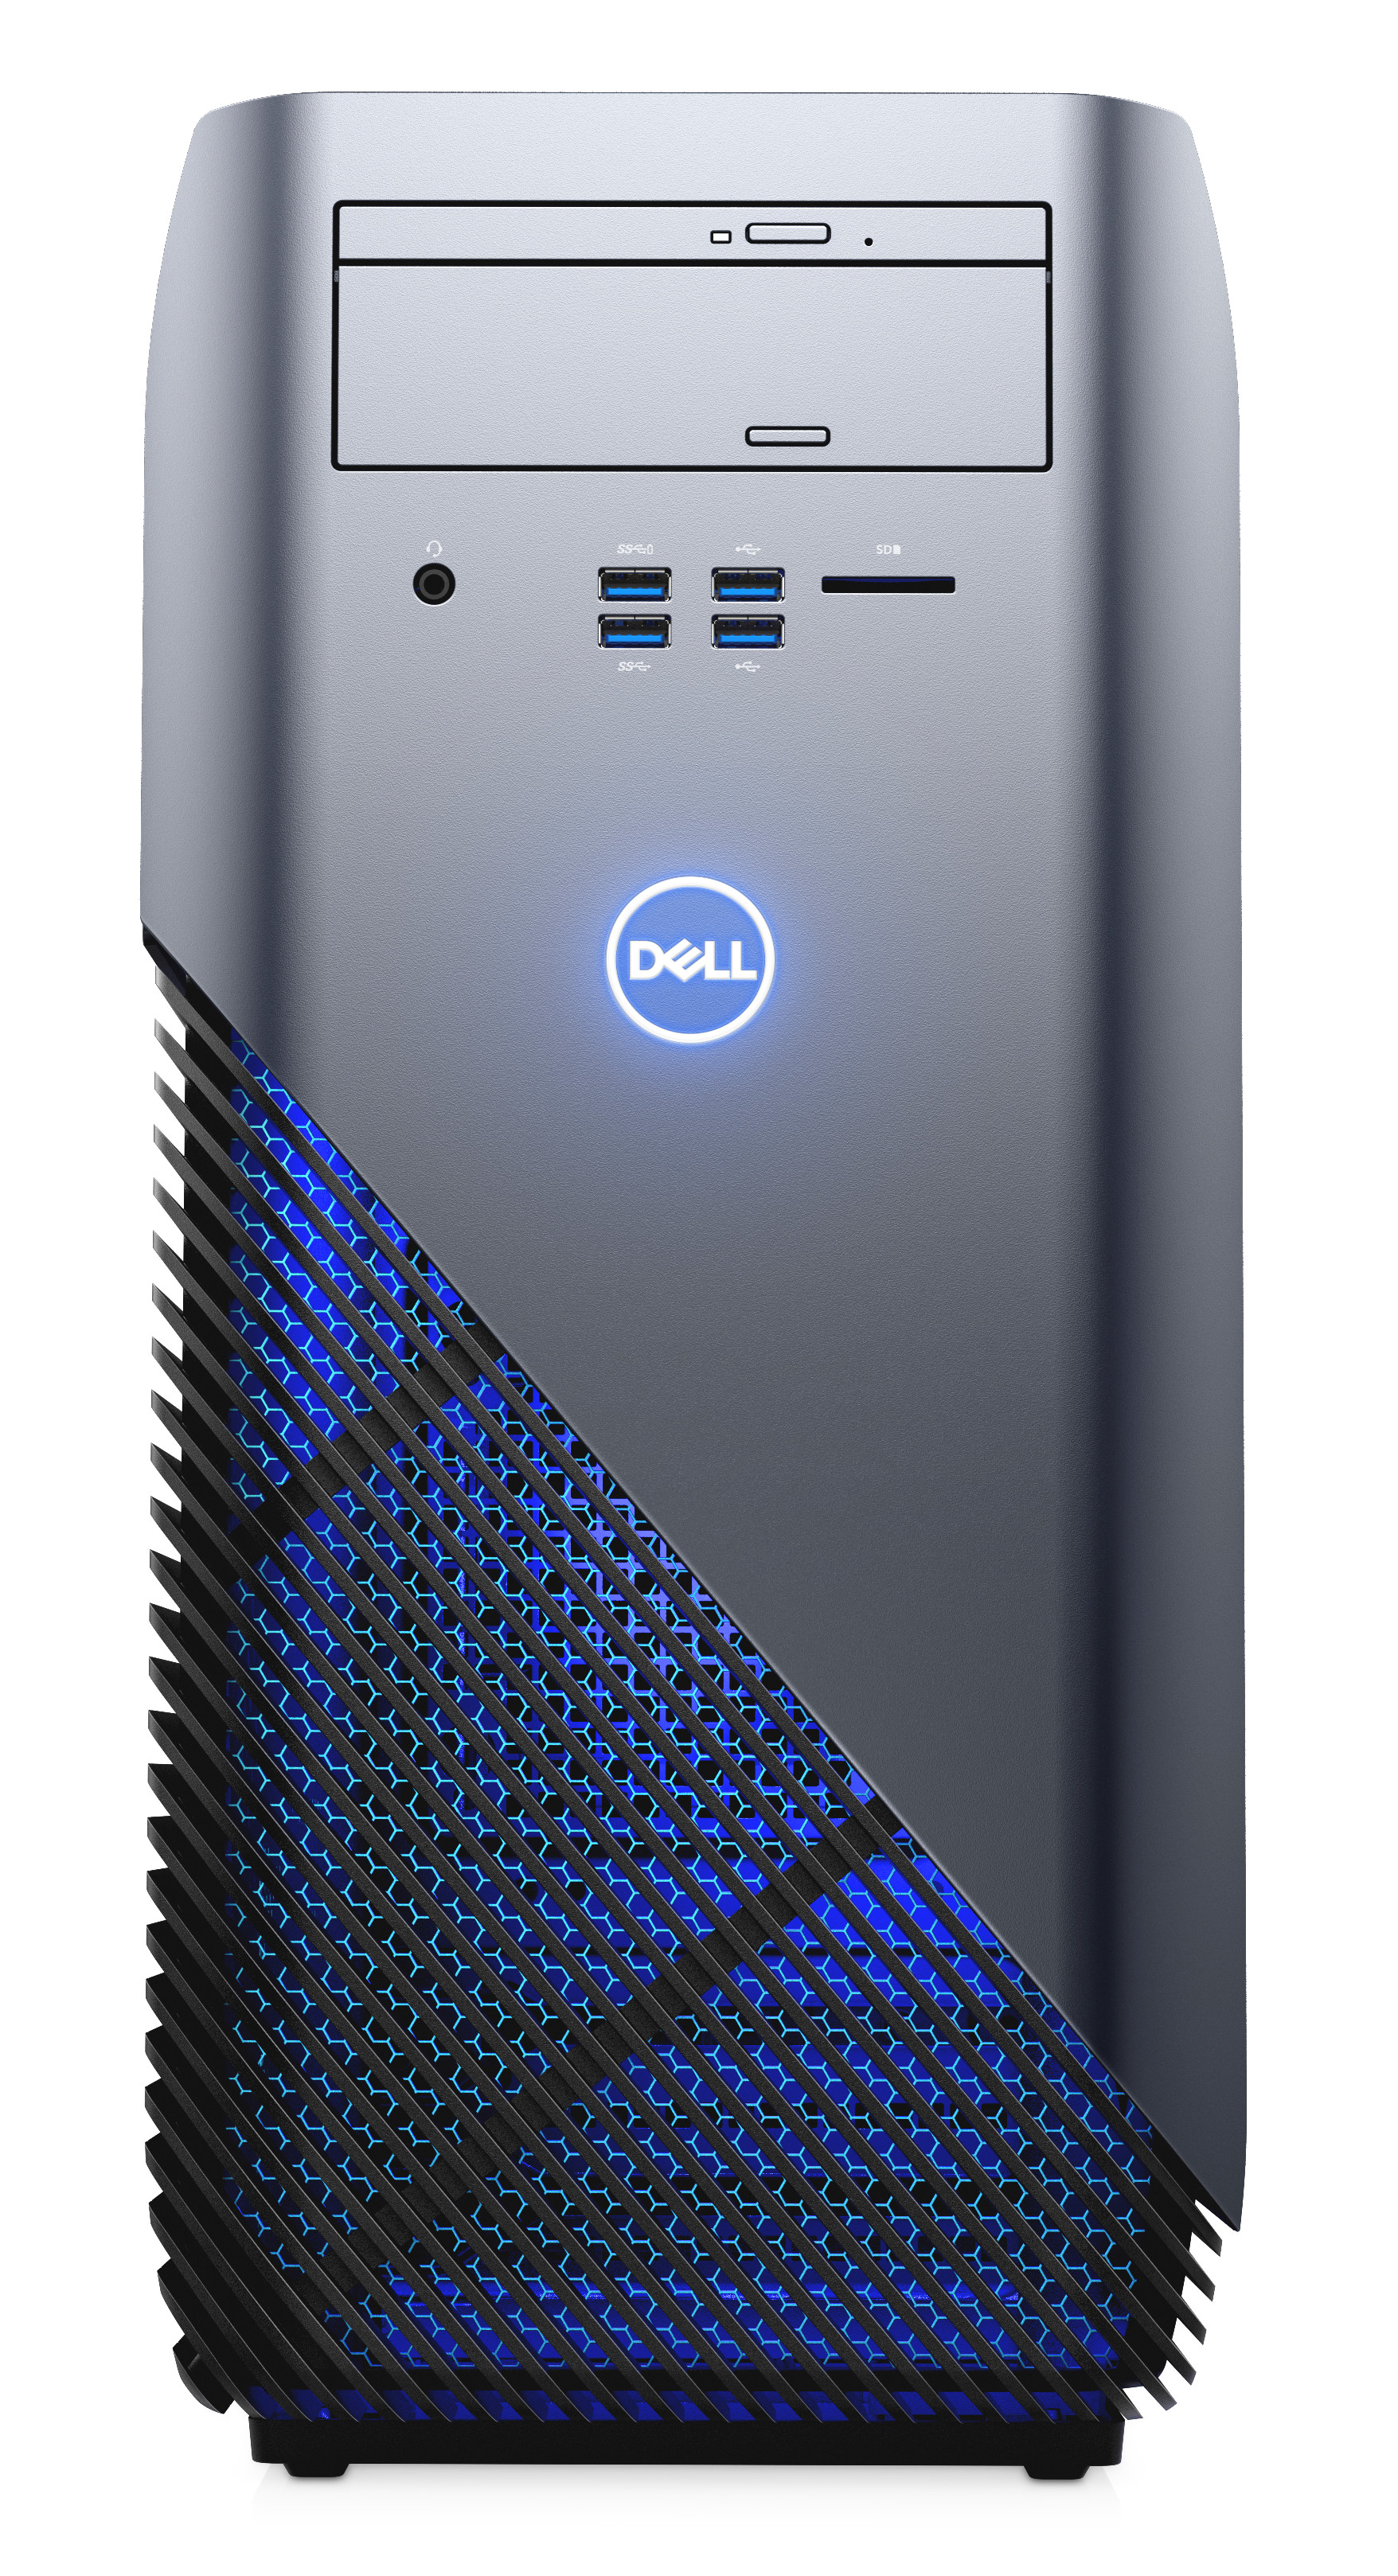 Dell unveils Inspiron Gaming Desktop, offering competitive performance at affordable prices - Neowin